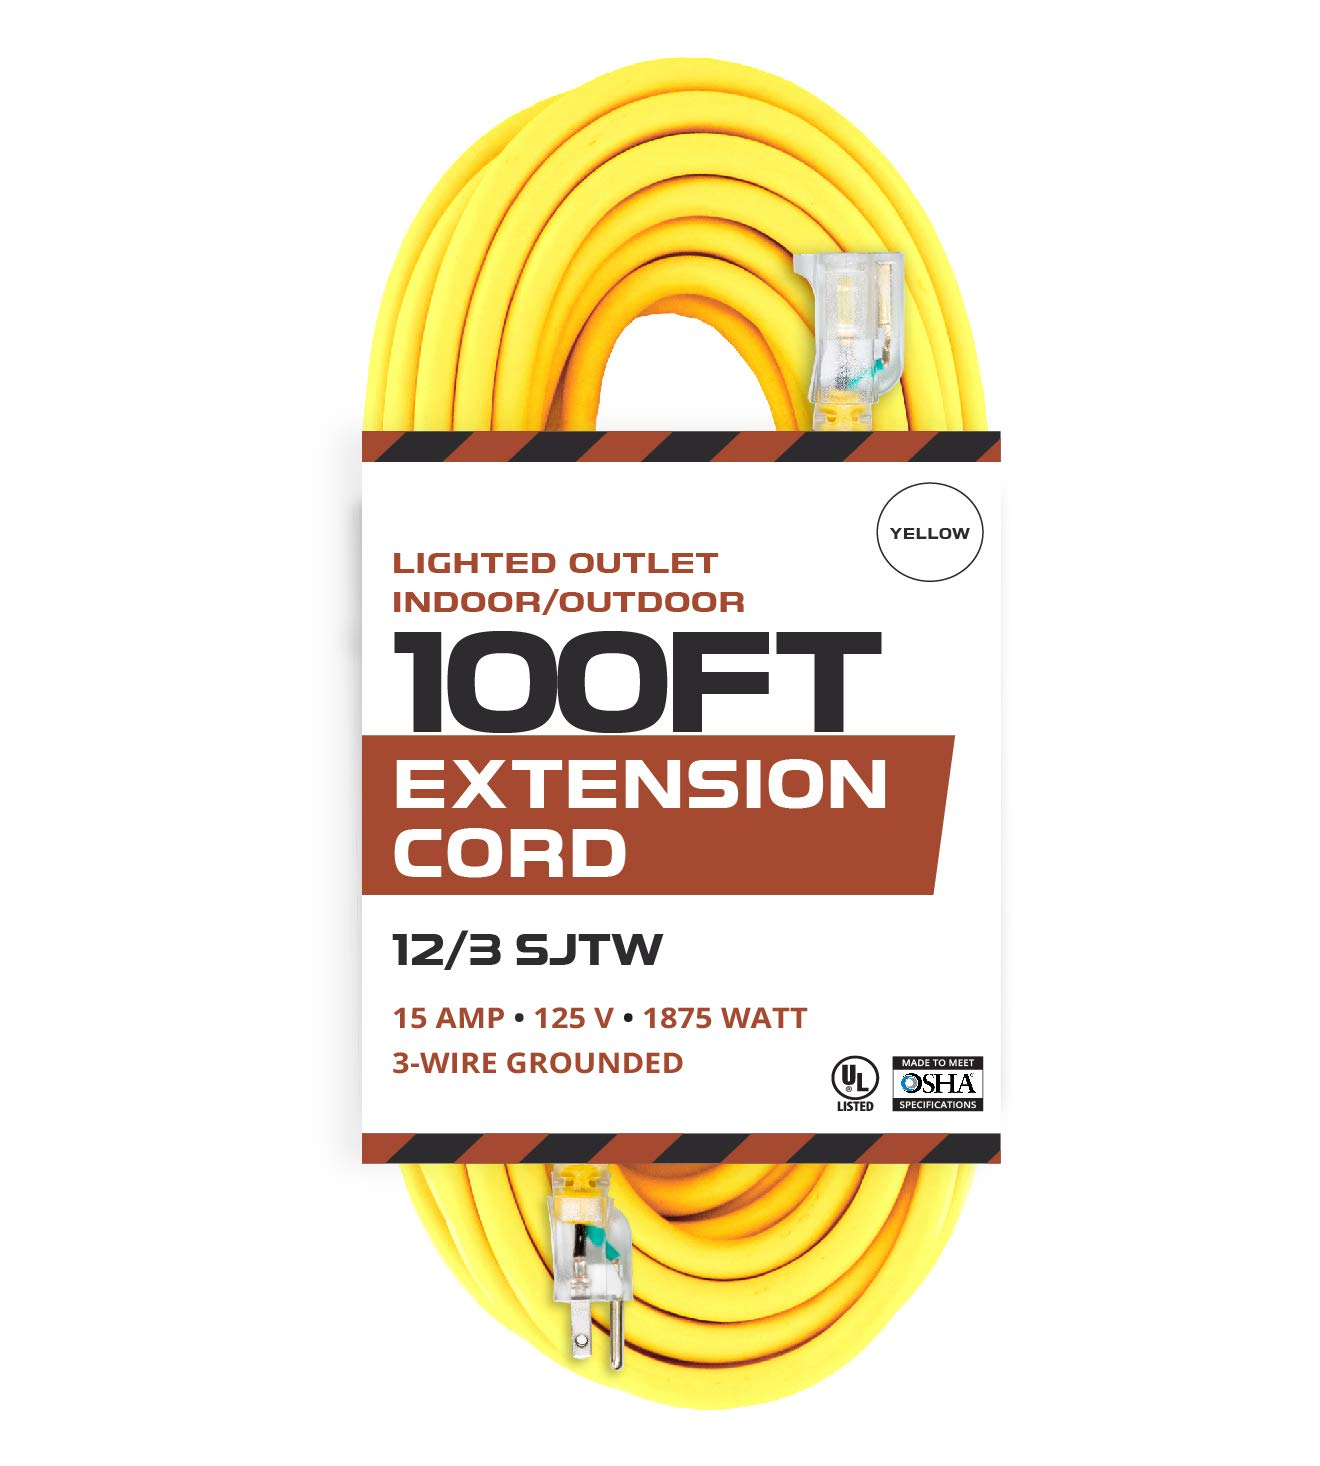 Outdoor Extension Cord - 12/3 SJTW Heavy Duty Yellow 3 Prong Extension Cable - Great for Garden and Major Appliances (100 Foot - Yellow) by Iron Forge Cable (Image #1)